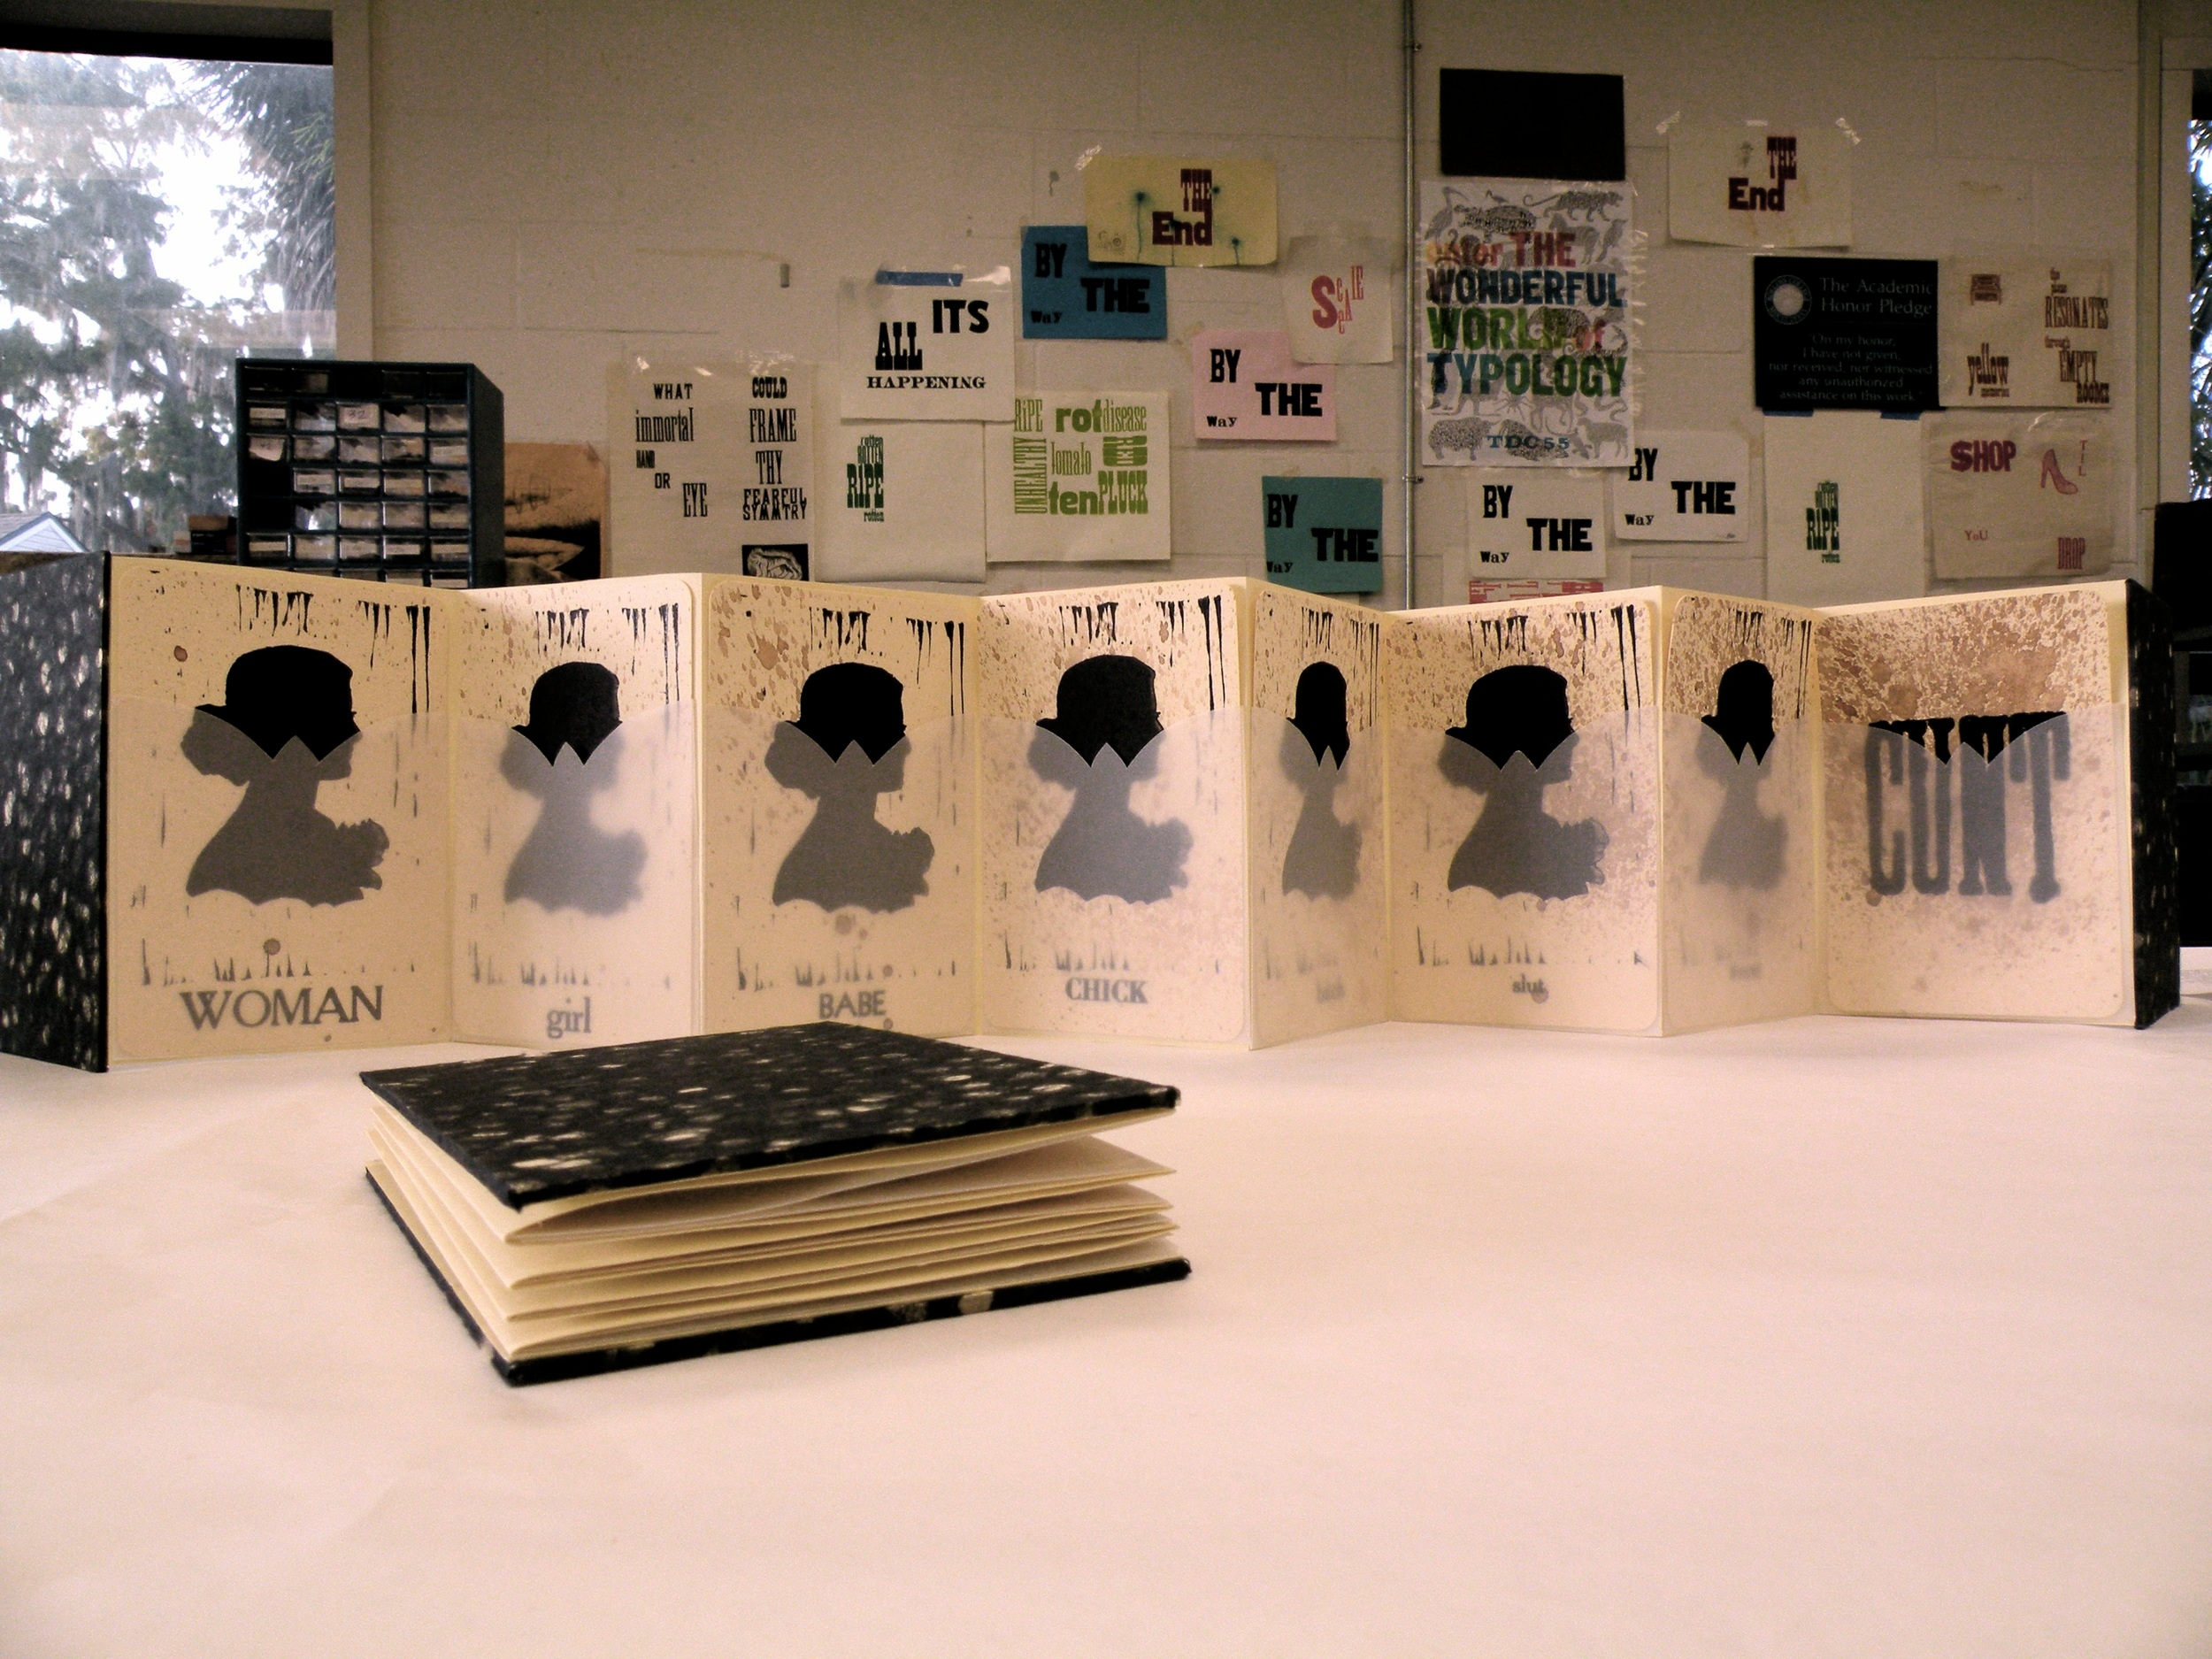 The Artist's Book Student Gallery - 1 of 4.jpg